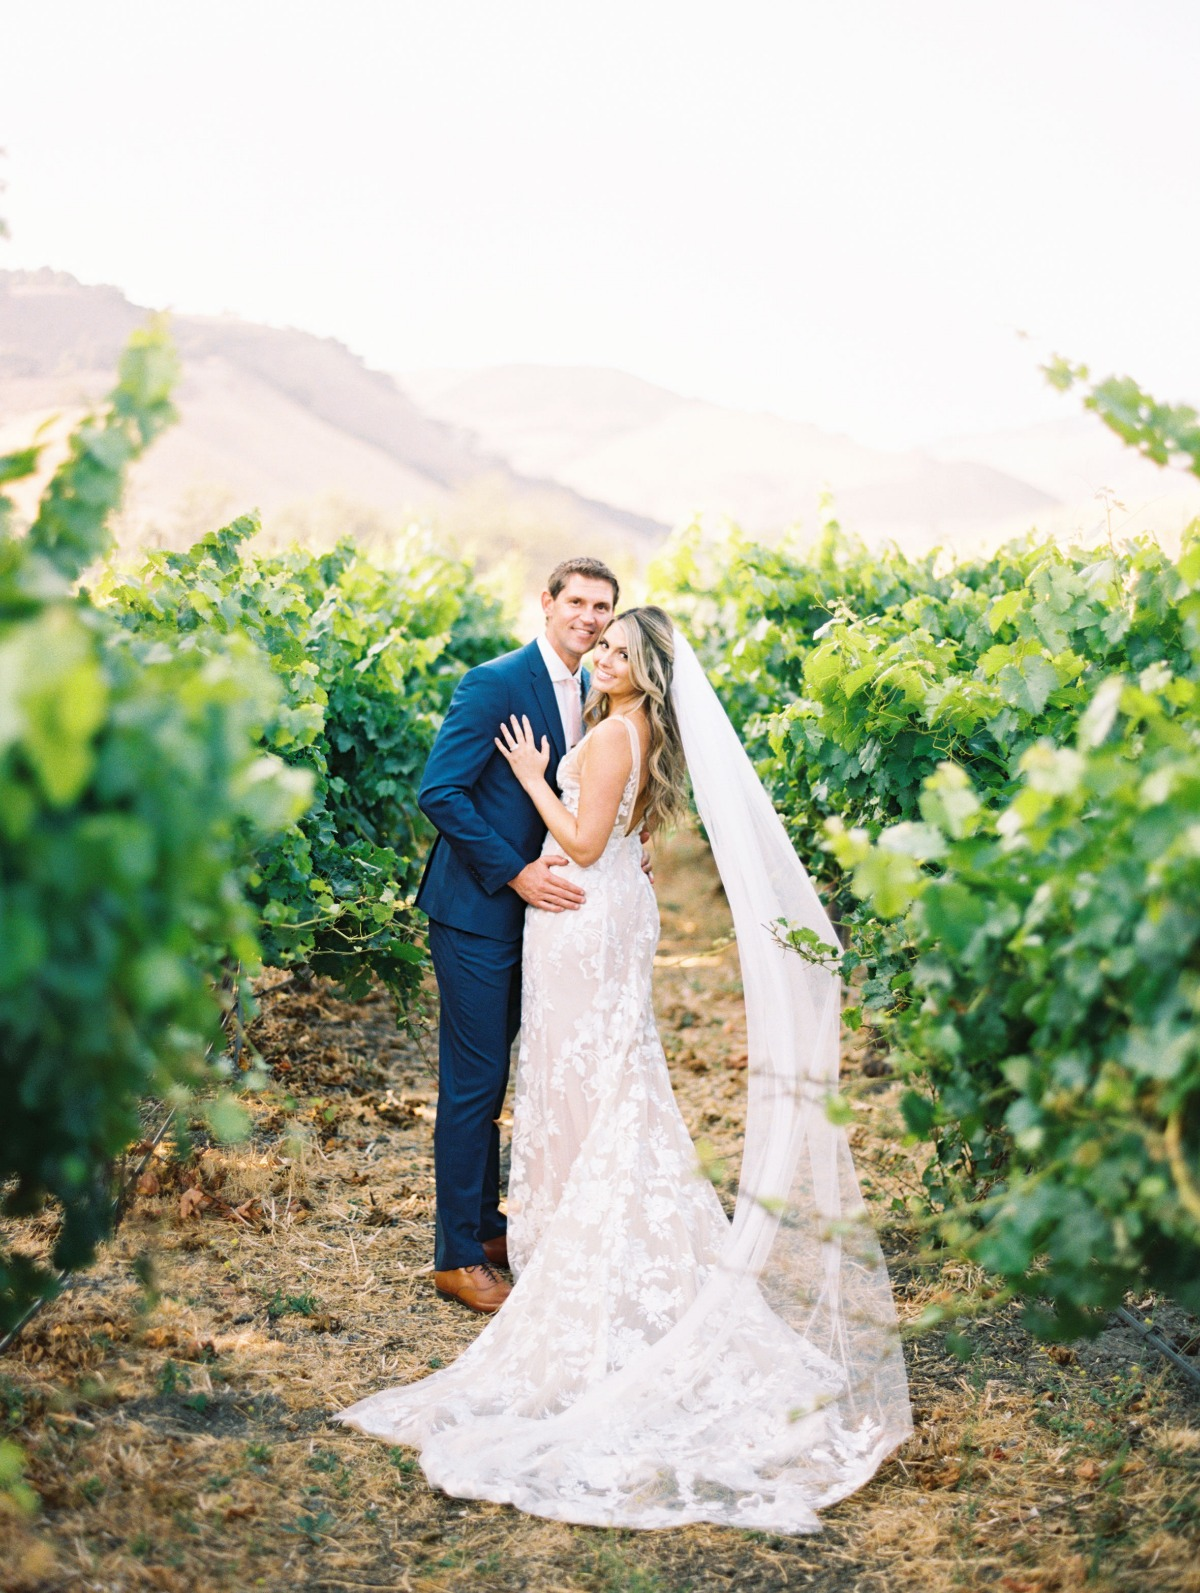 Dreamy rustic vineyard wedding